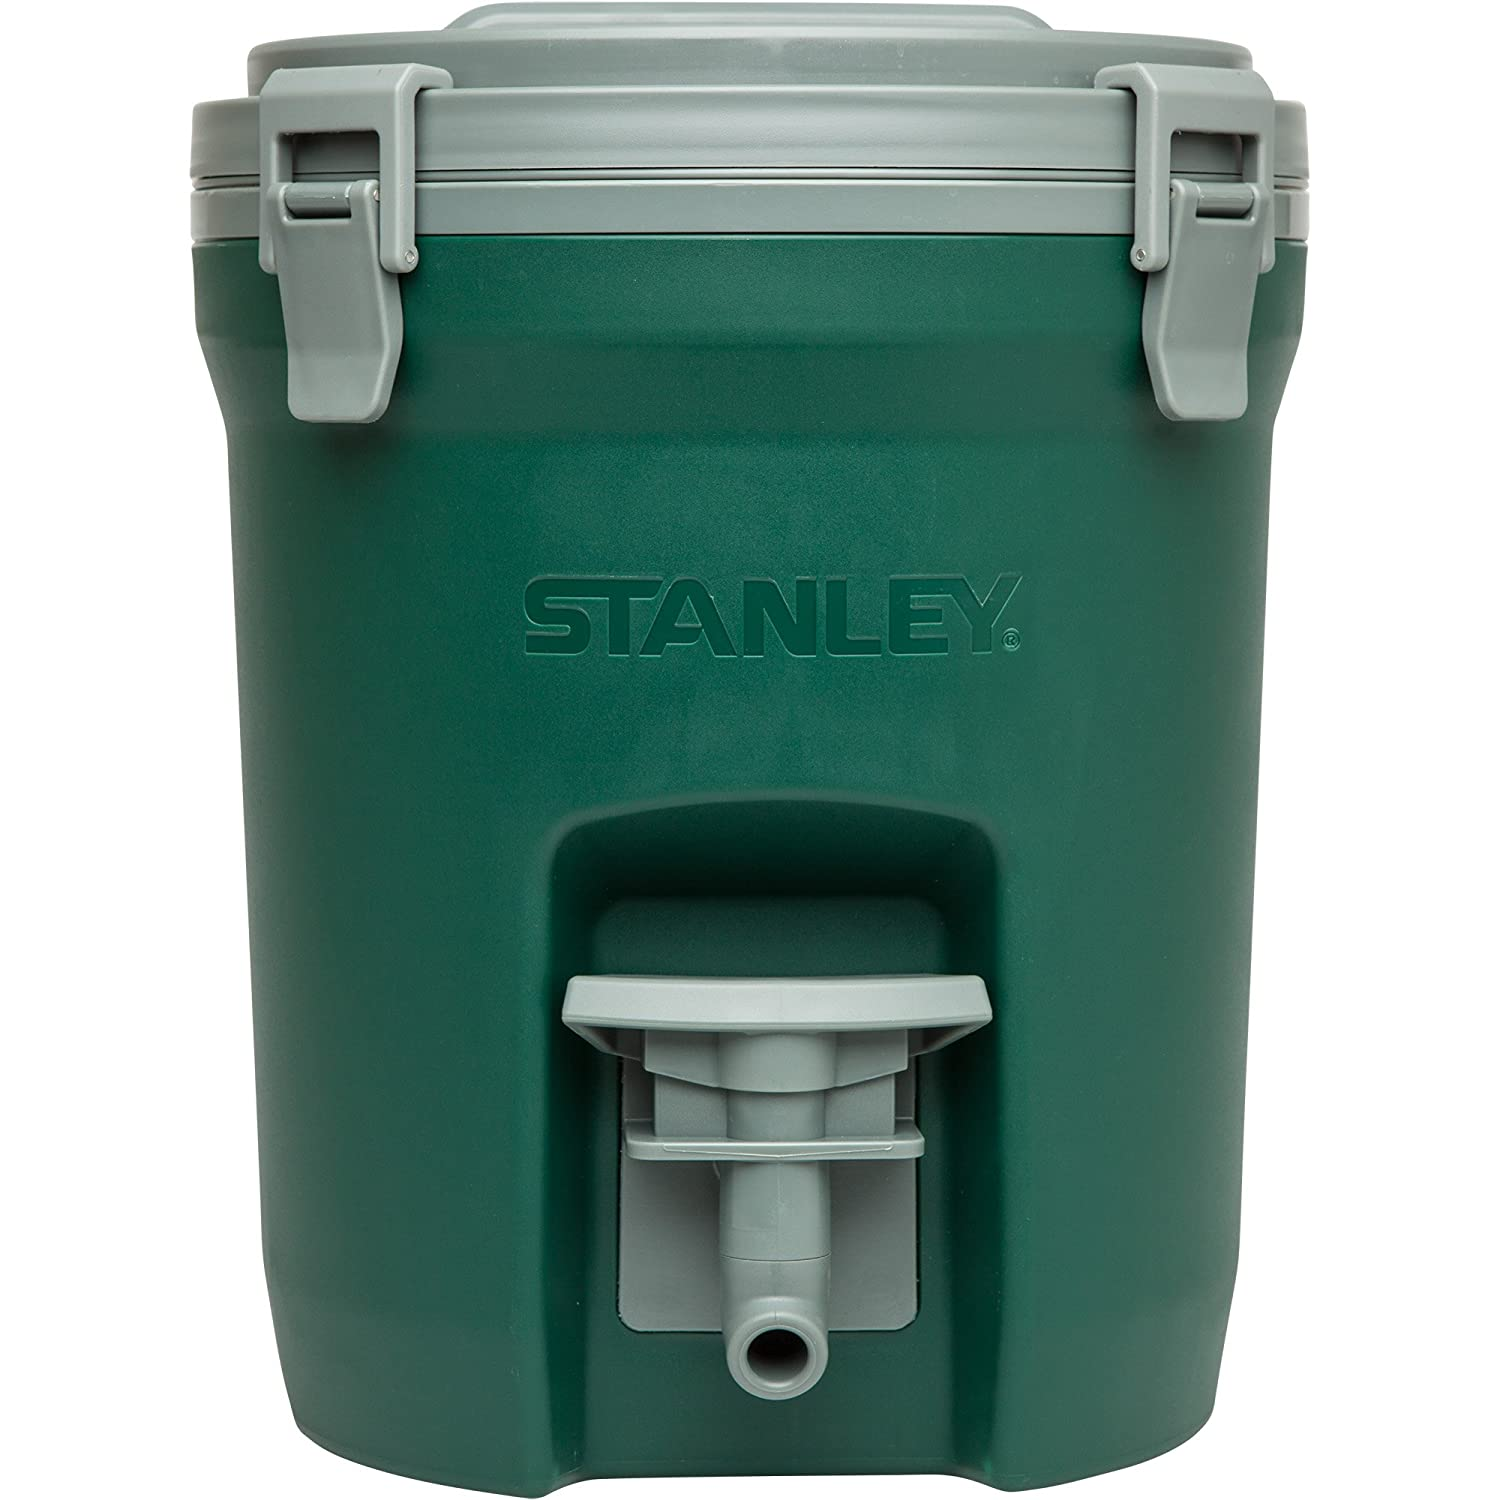 Stanley Insulated Rugged Water Jug 1 Gallon and 2 Gallon Green Pacific Market International 10-01938-001